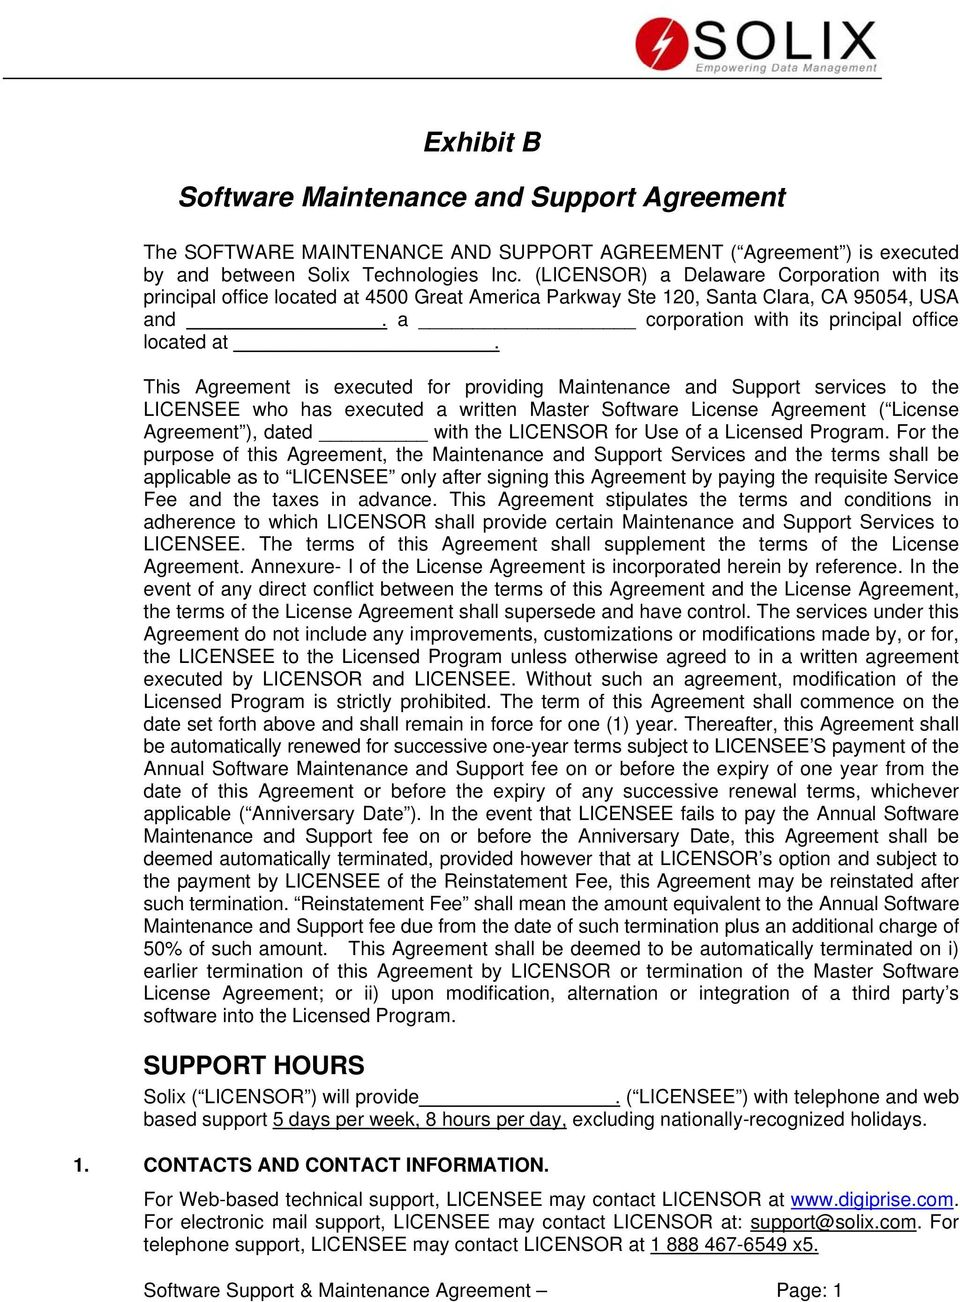 Exhibit B Software Maintenance And Support Agreement Pdf